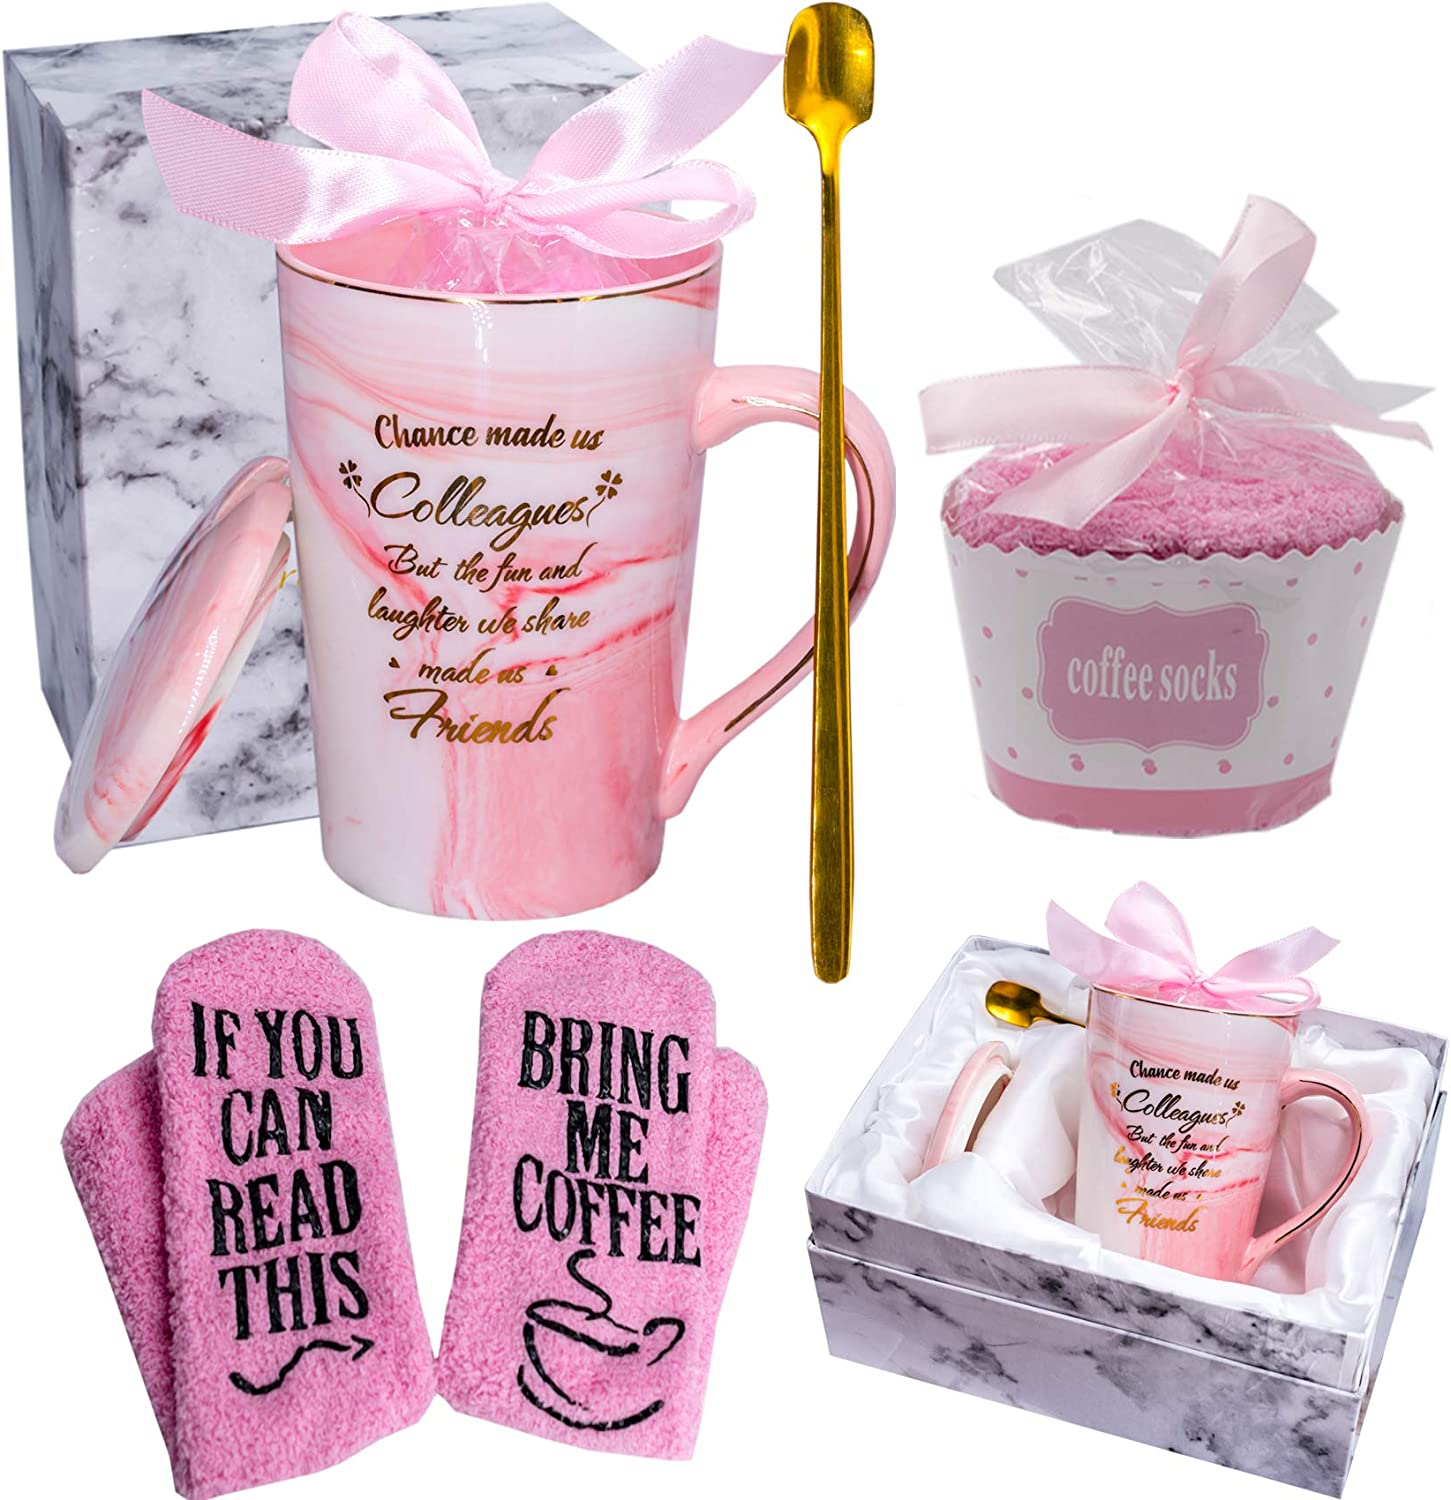 Mugpie Chance Made Us Colleagues Coffee Mug- Funny Coworker Gifts Birthday Gifts for Female Boss Women Friends Office Gifts for Mother's Day -Perfect Gifts for Going away Leaving Farewell + Cute Socks